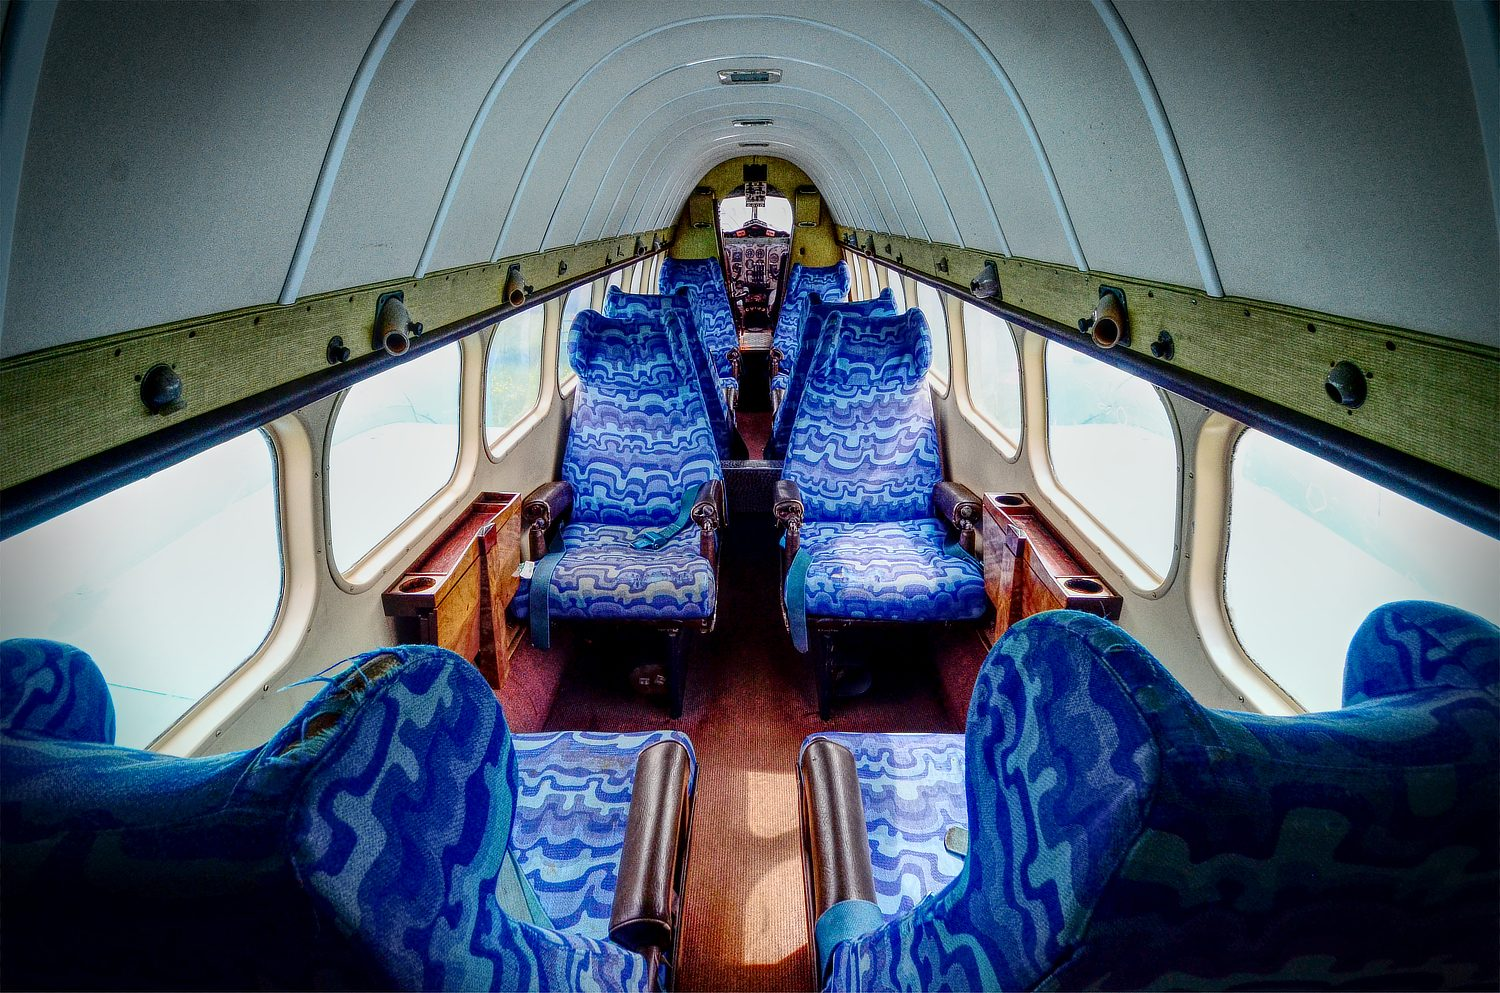 De Havilland Heron cabin interior